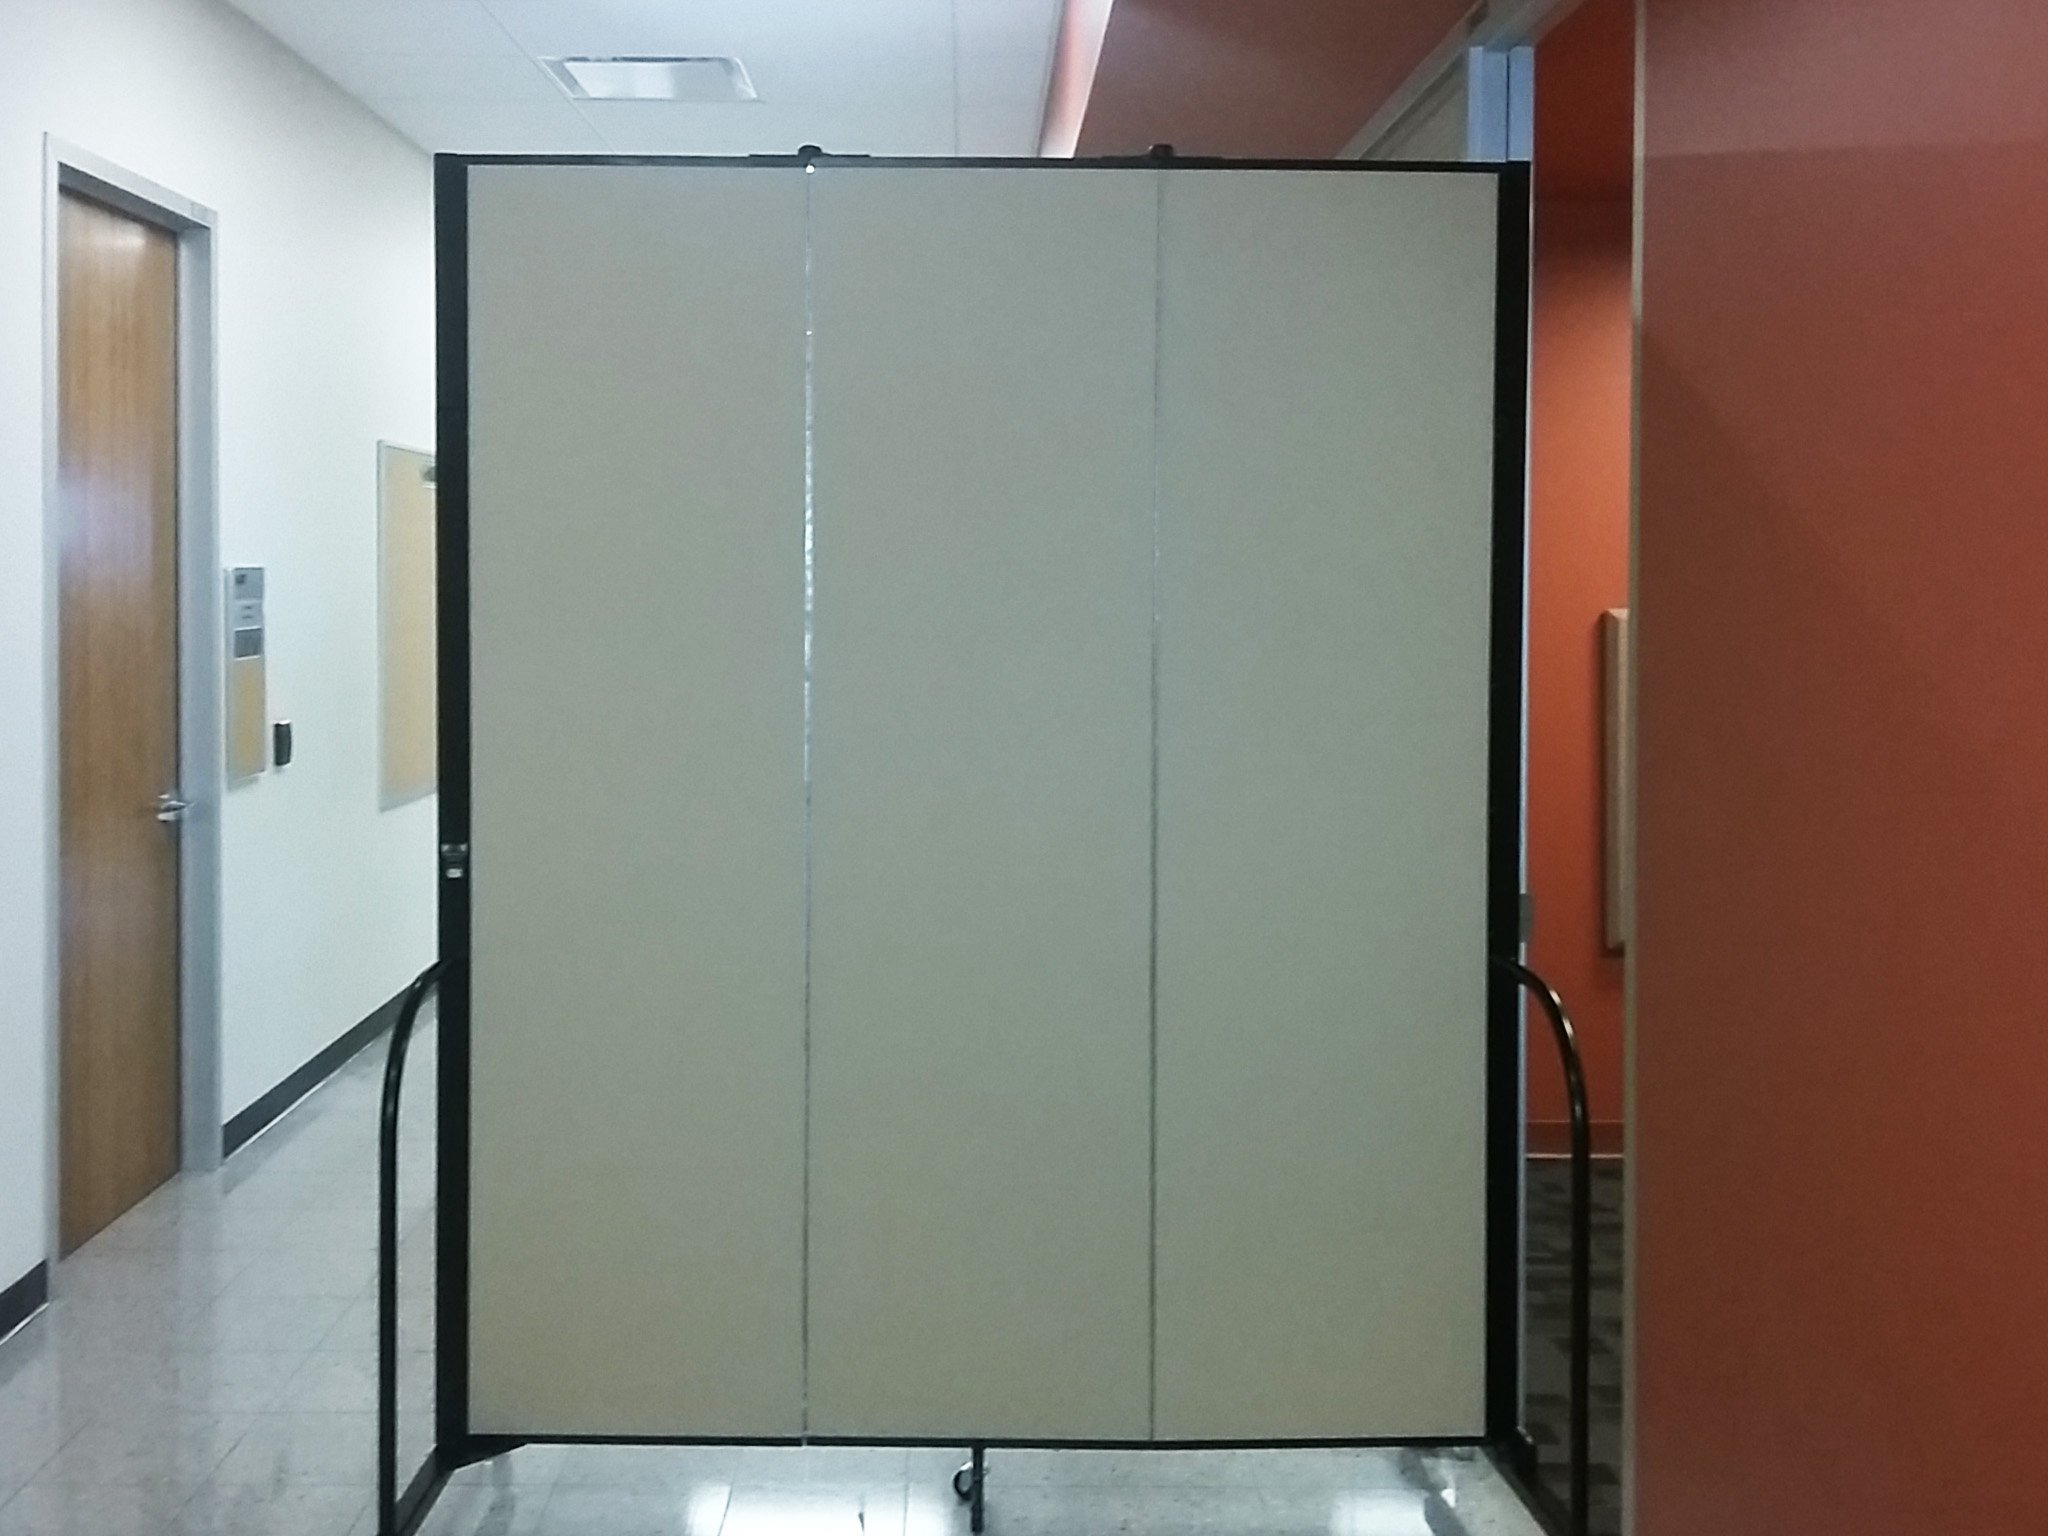 Sound absorbing panel in a hallway